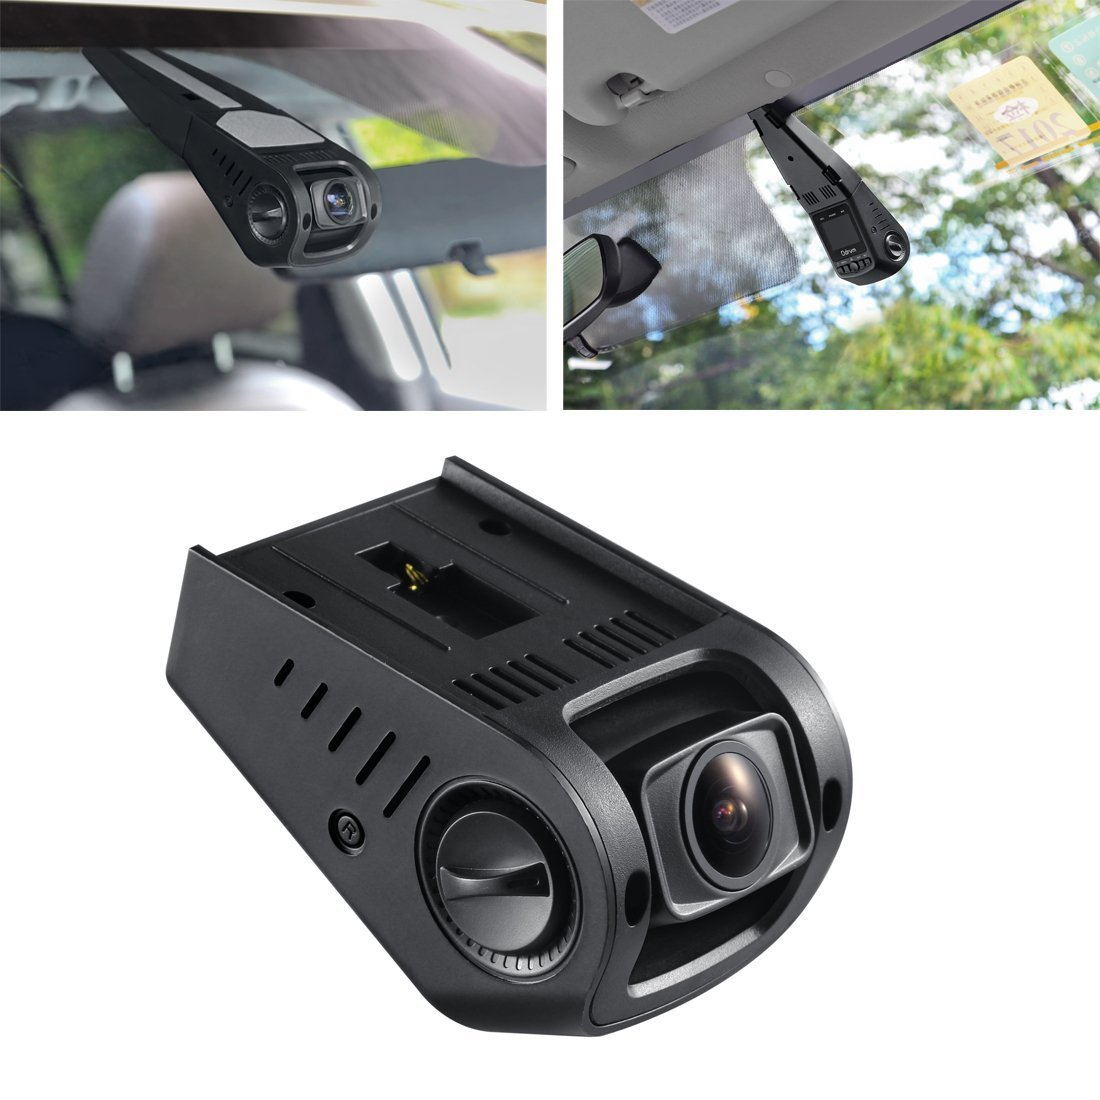 odrvm dash cam pro hd 1080p dashboard camera for cars b40. Black Bedroom Furniture Sets. Home Design Ideas